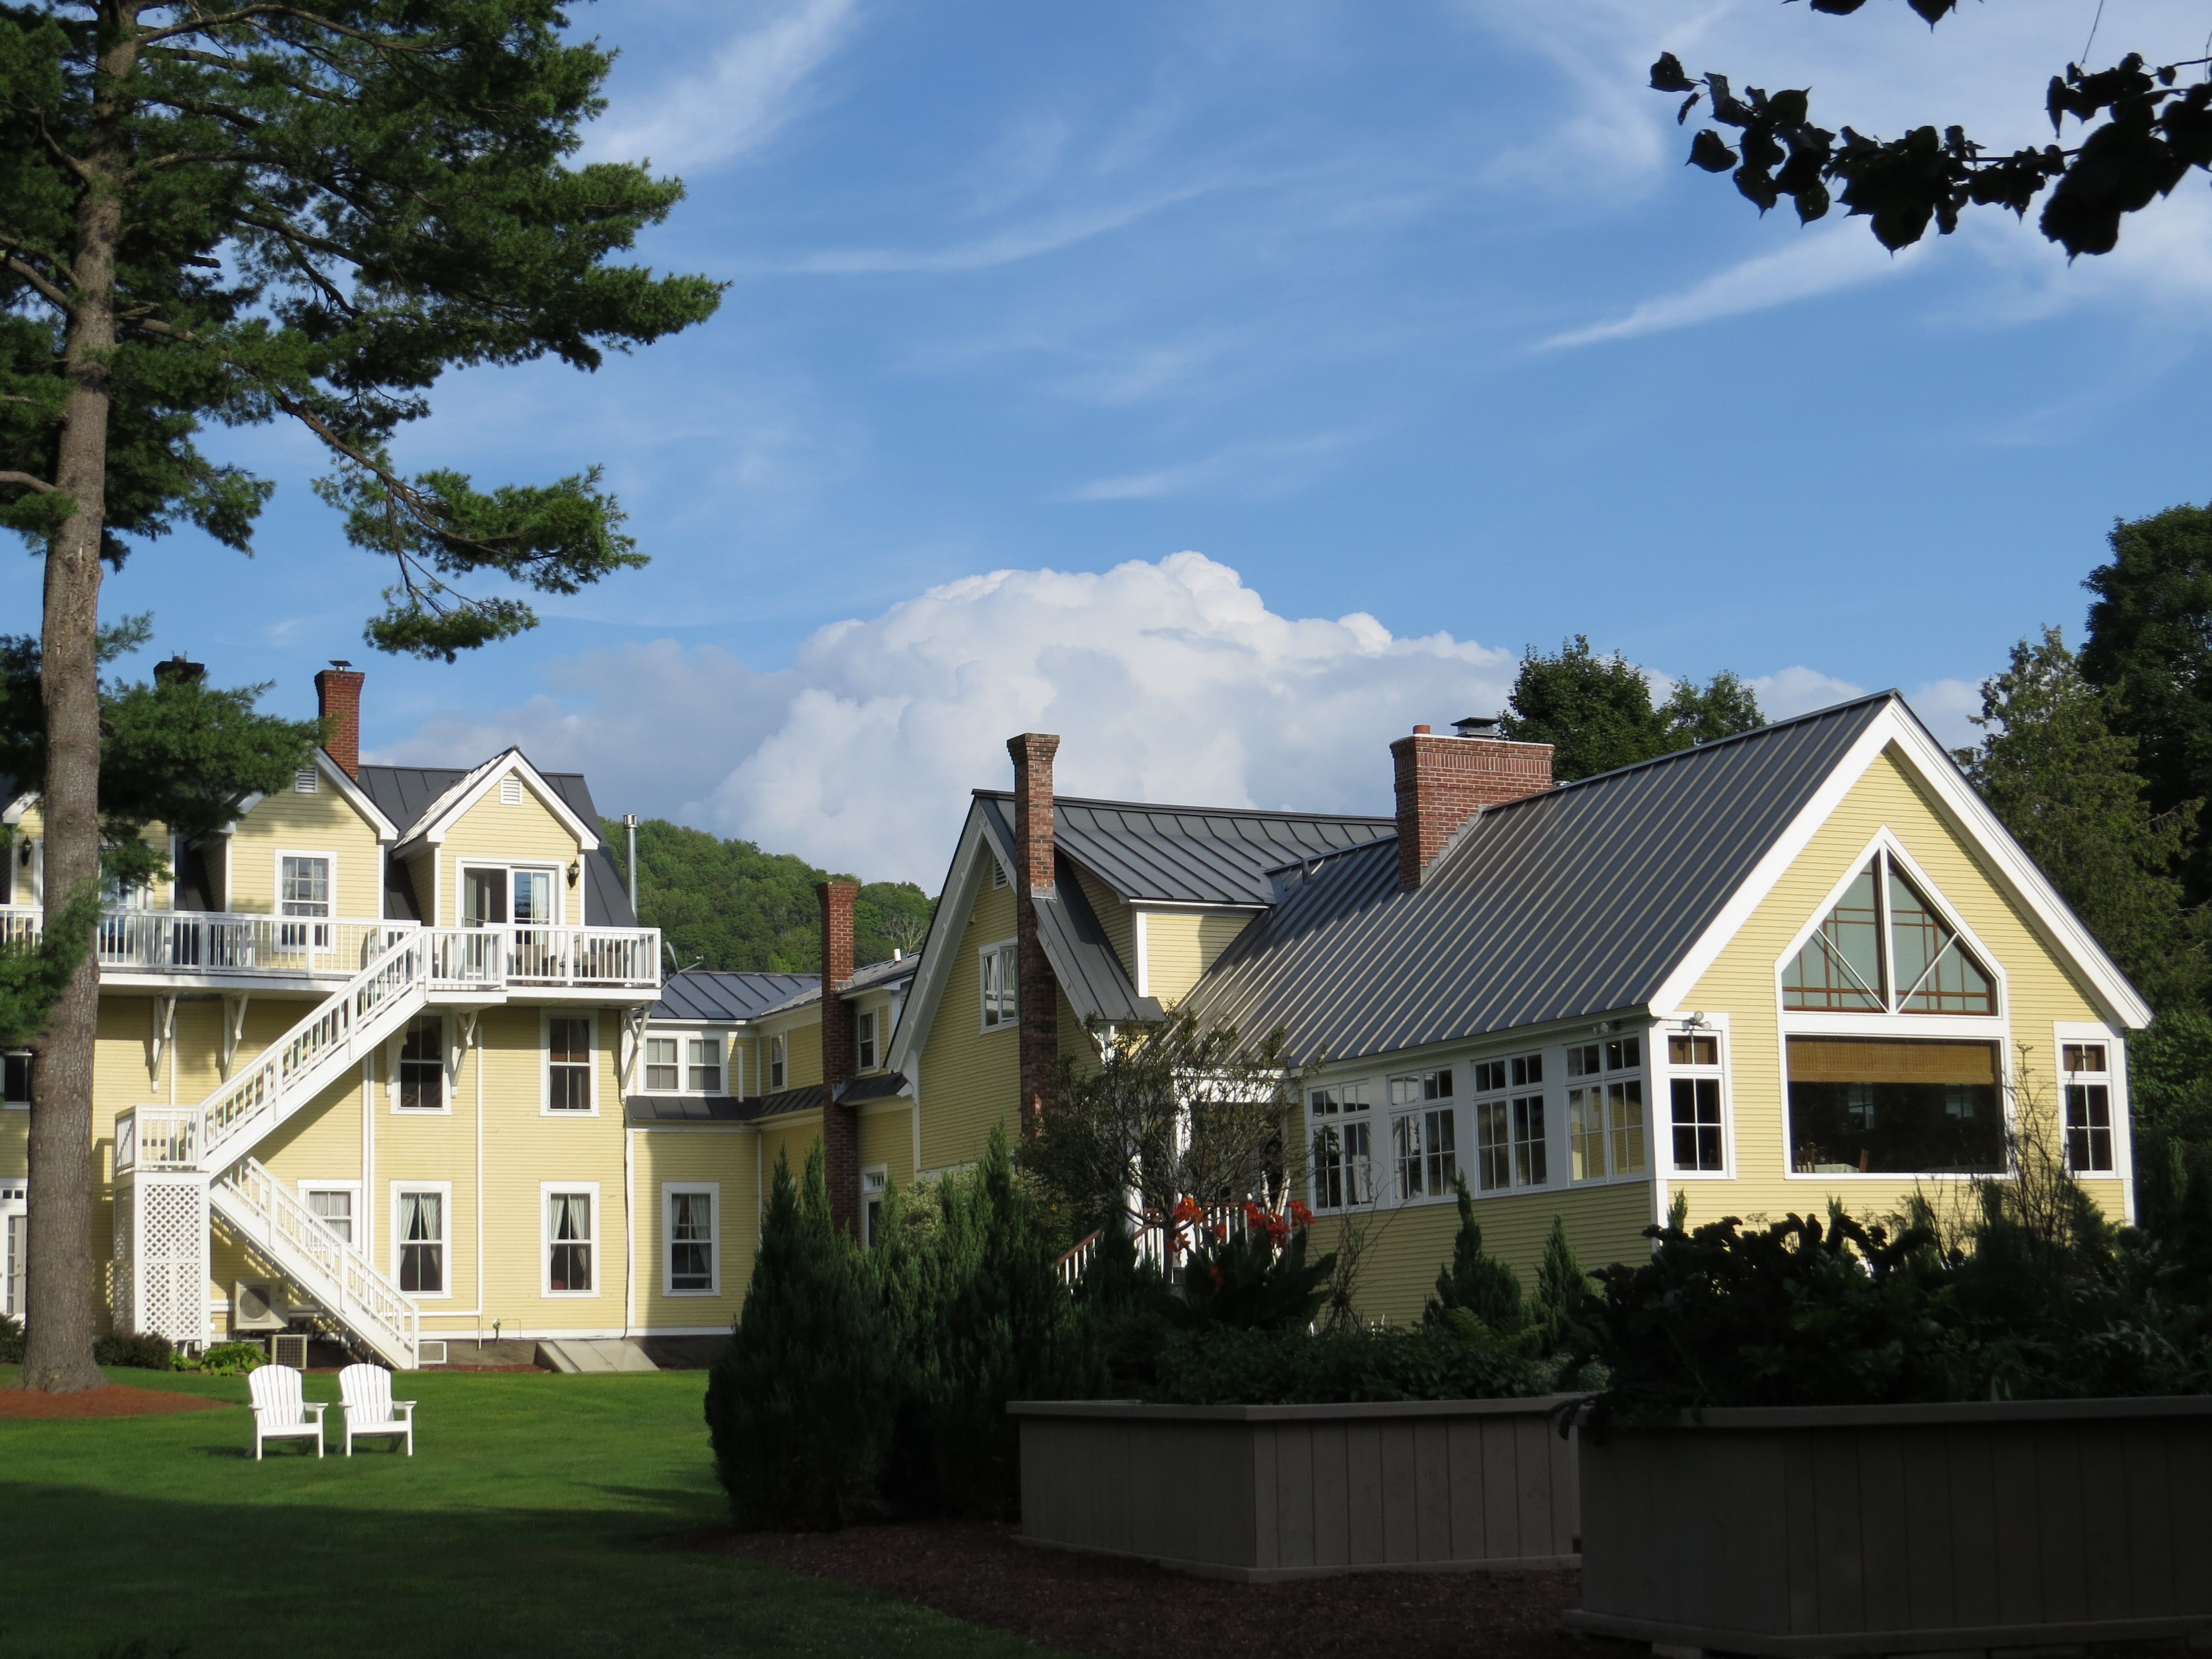 taconic and bed breakfast manchester hotel kimpton vermont vt en us hotels kimptonhotels hoteldetail in rutth